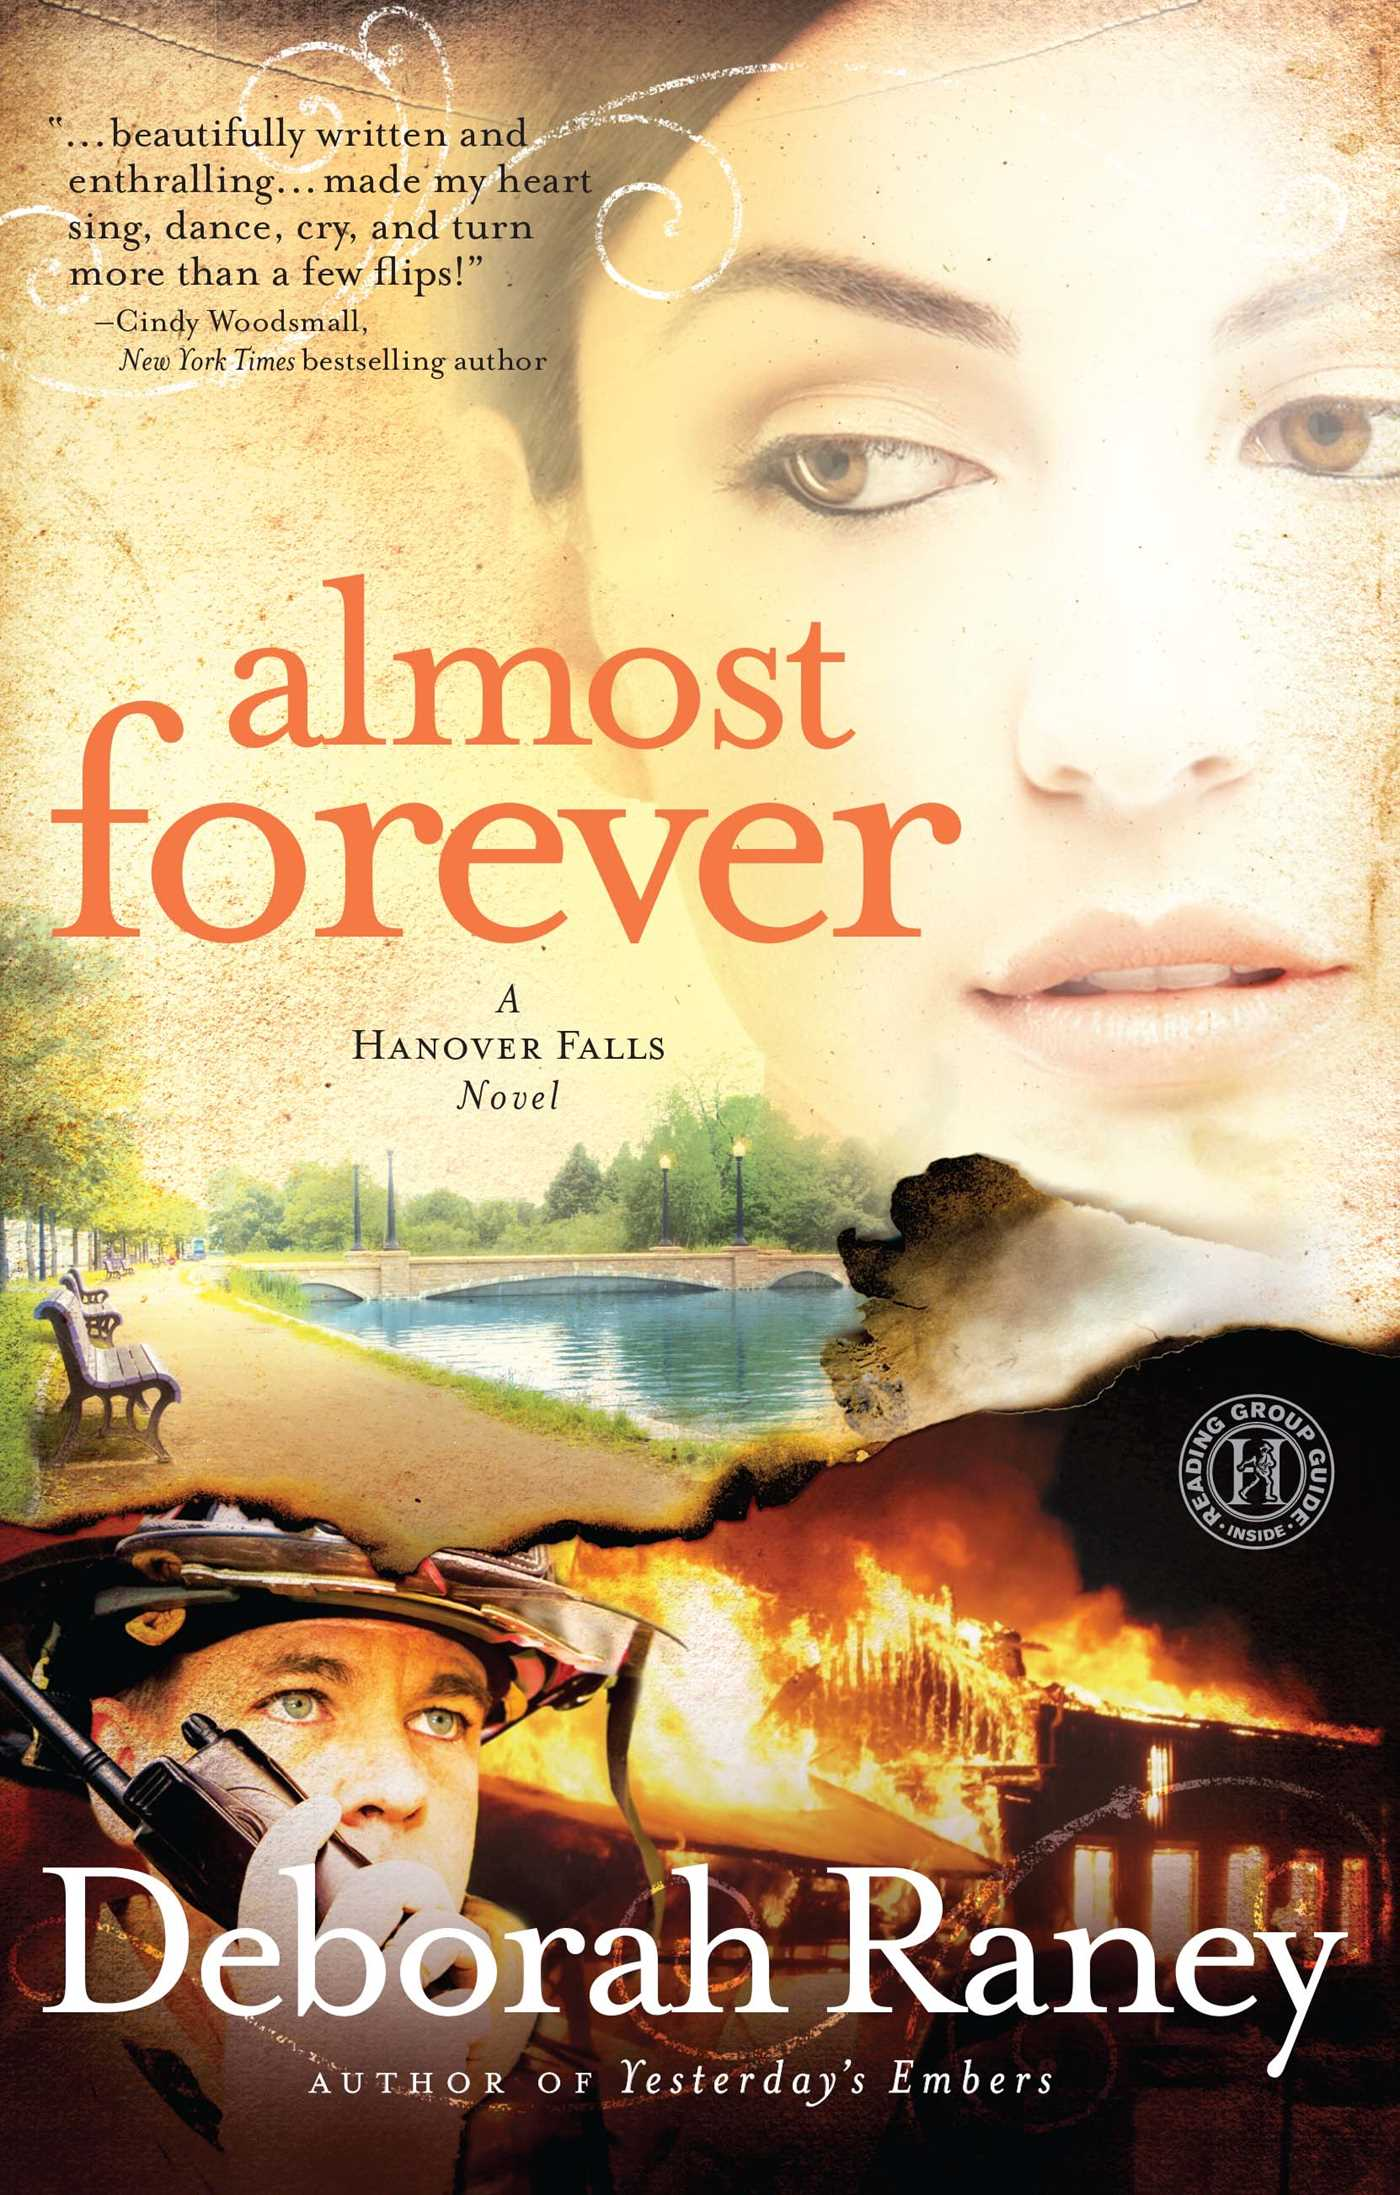 Almost-forever-9781416599913_hr